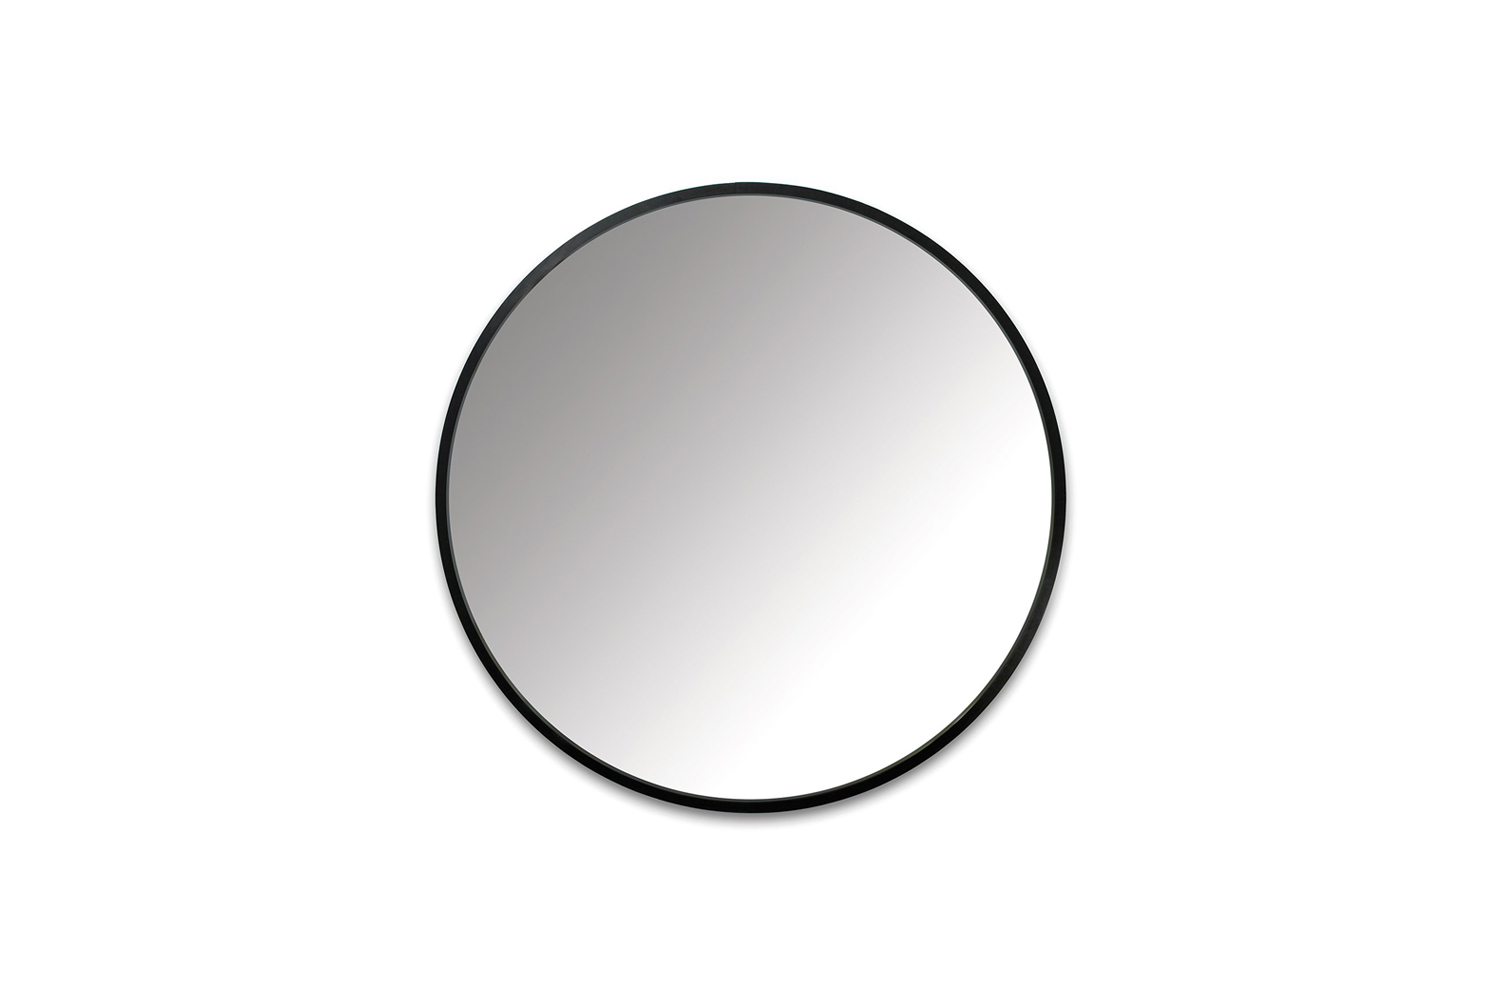 The Umbra Hub Wall Mirror is finished in black rubber for $0 at Horne.